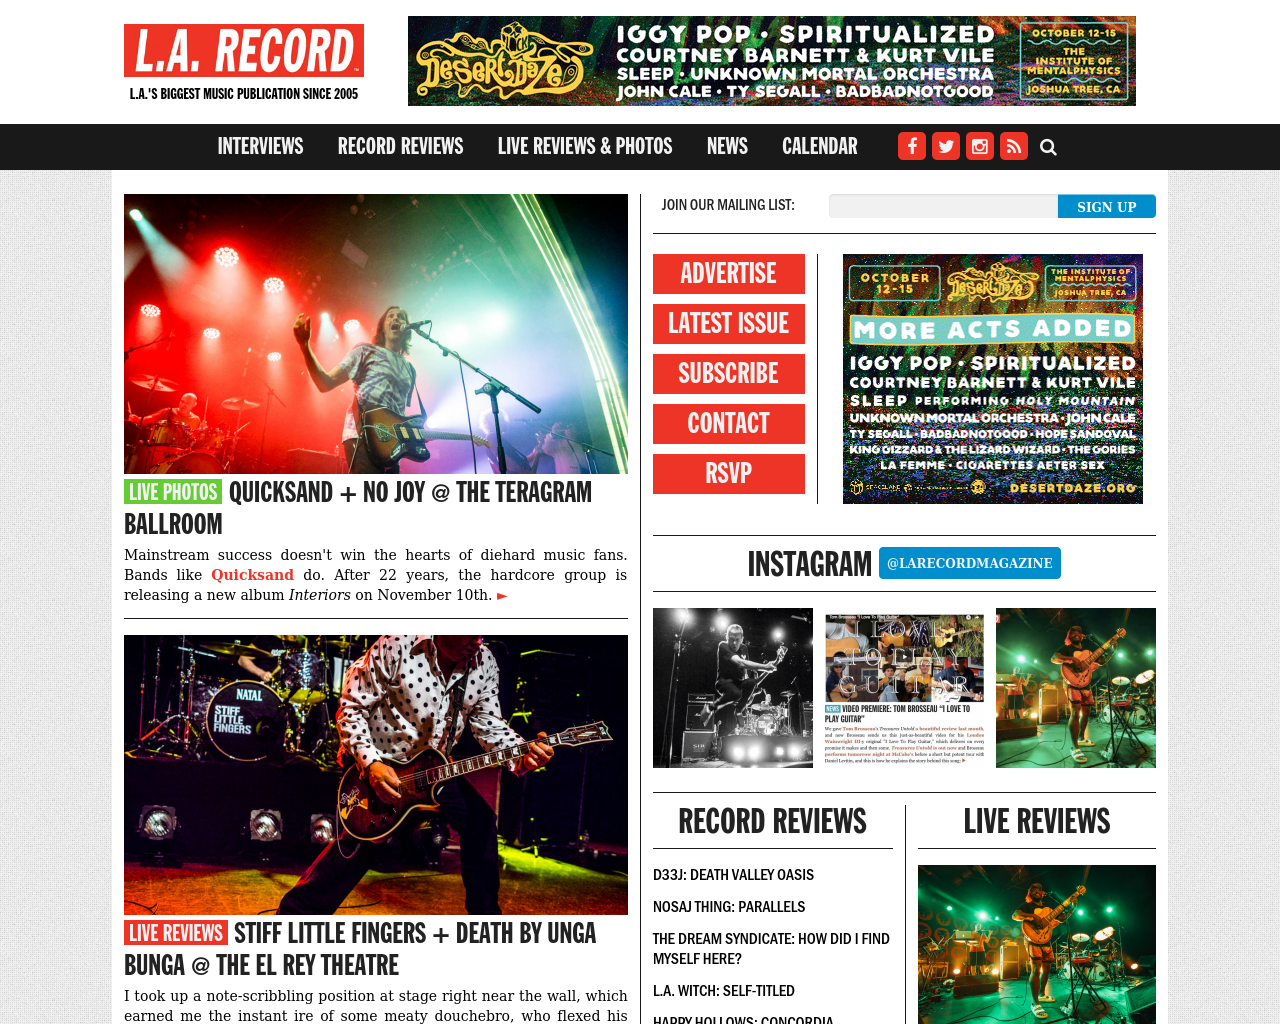 L.A.-Record-Advertising-Reviews-Pricing